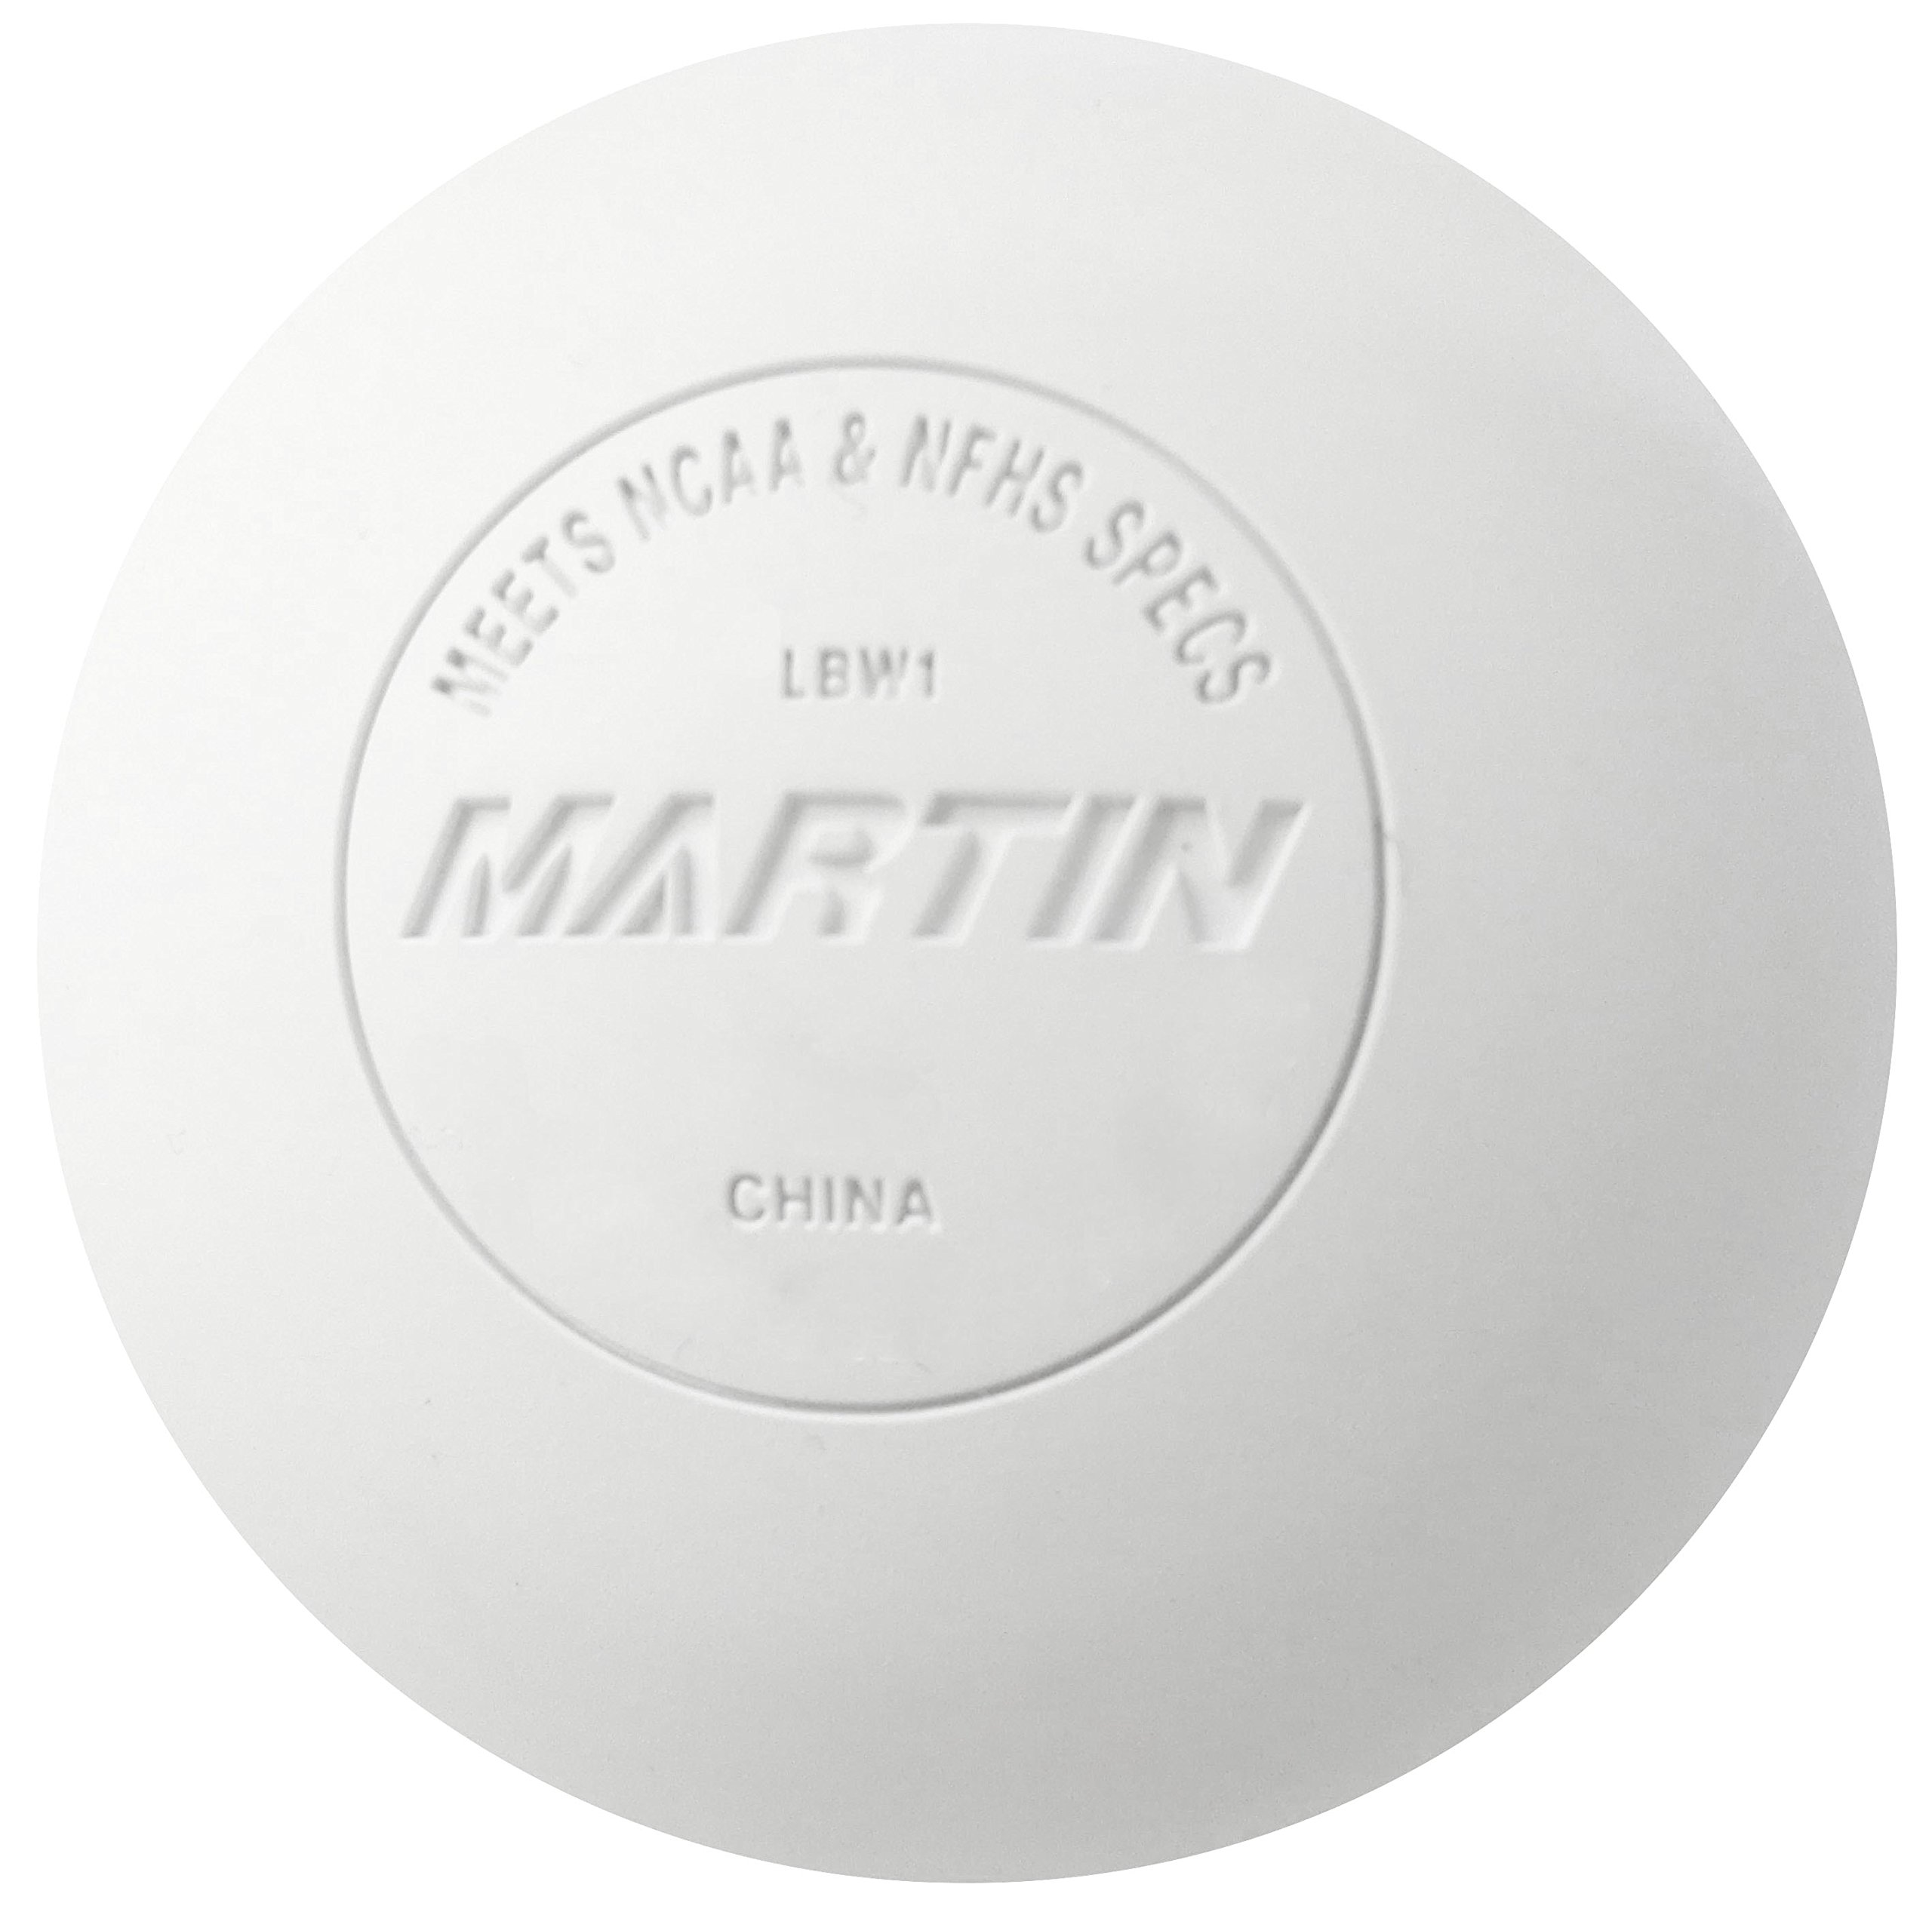 Martin Sports Lacrosse Balls NFHS Approved, White, 12 Piece